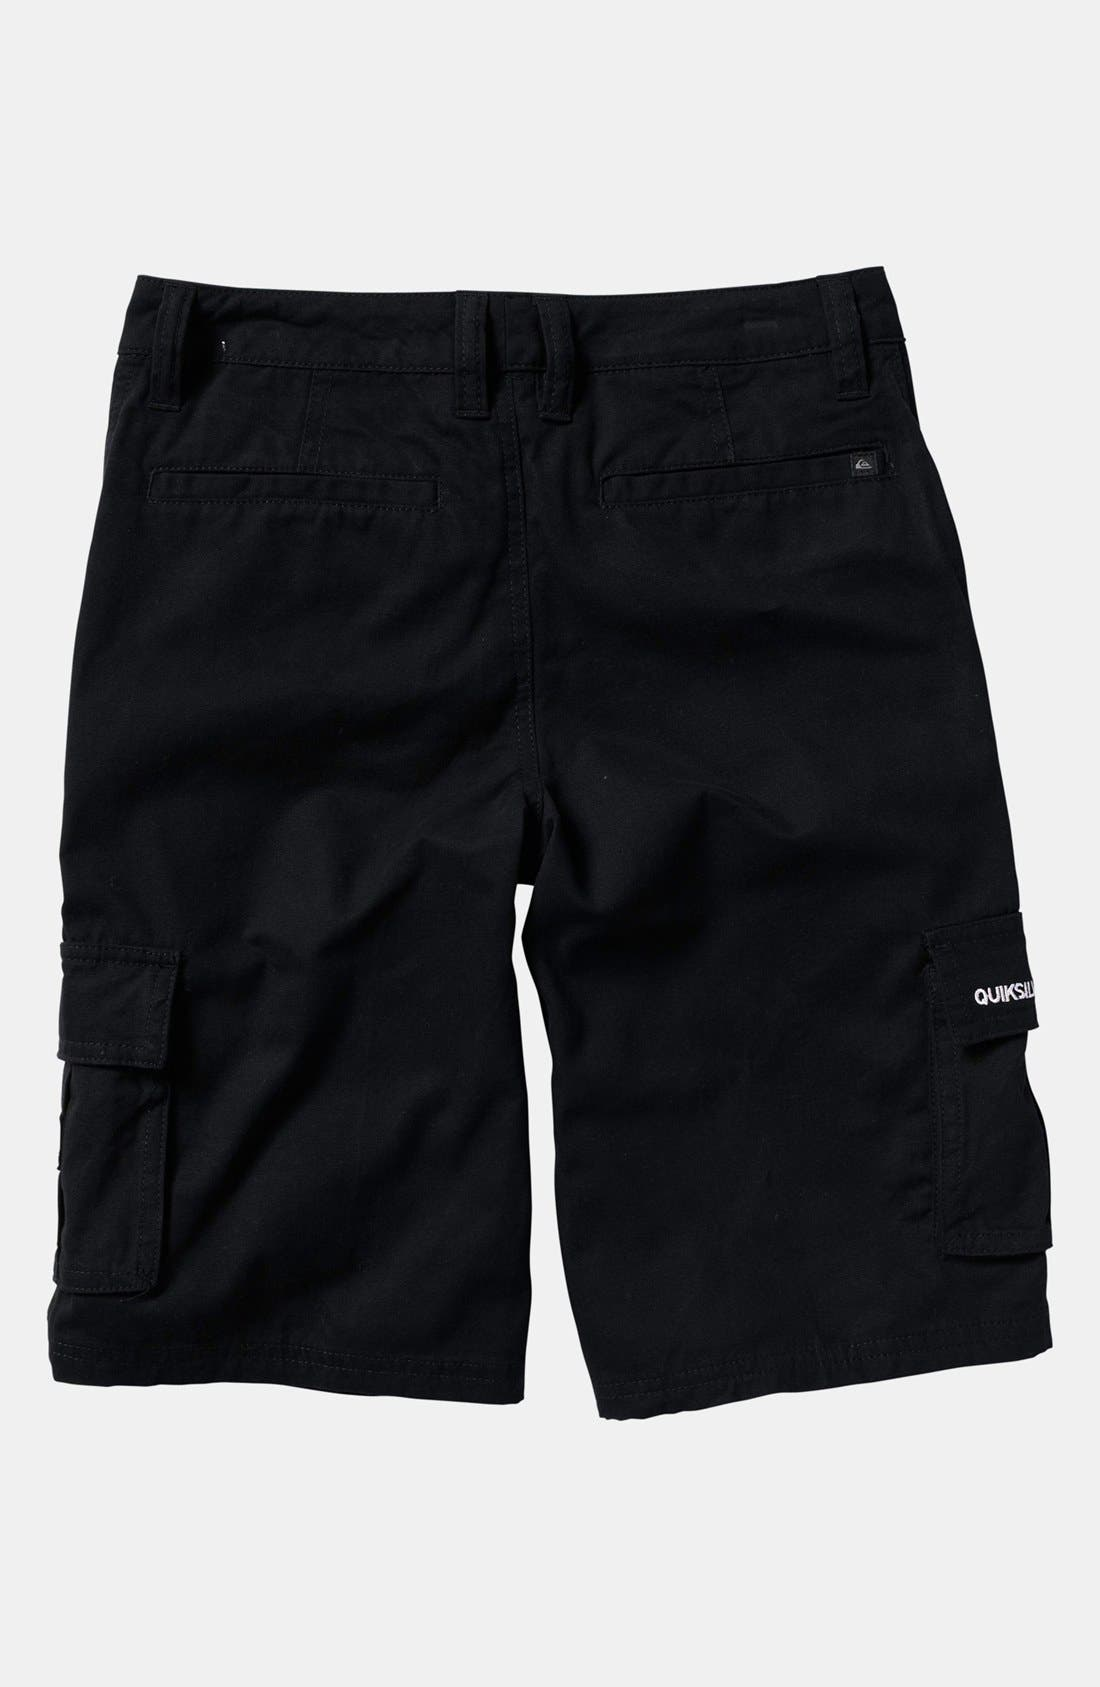 Alternate Image 2  - Quiksilver 'Sue Fley' Shorts